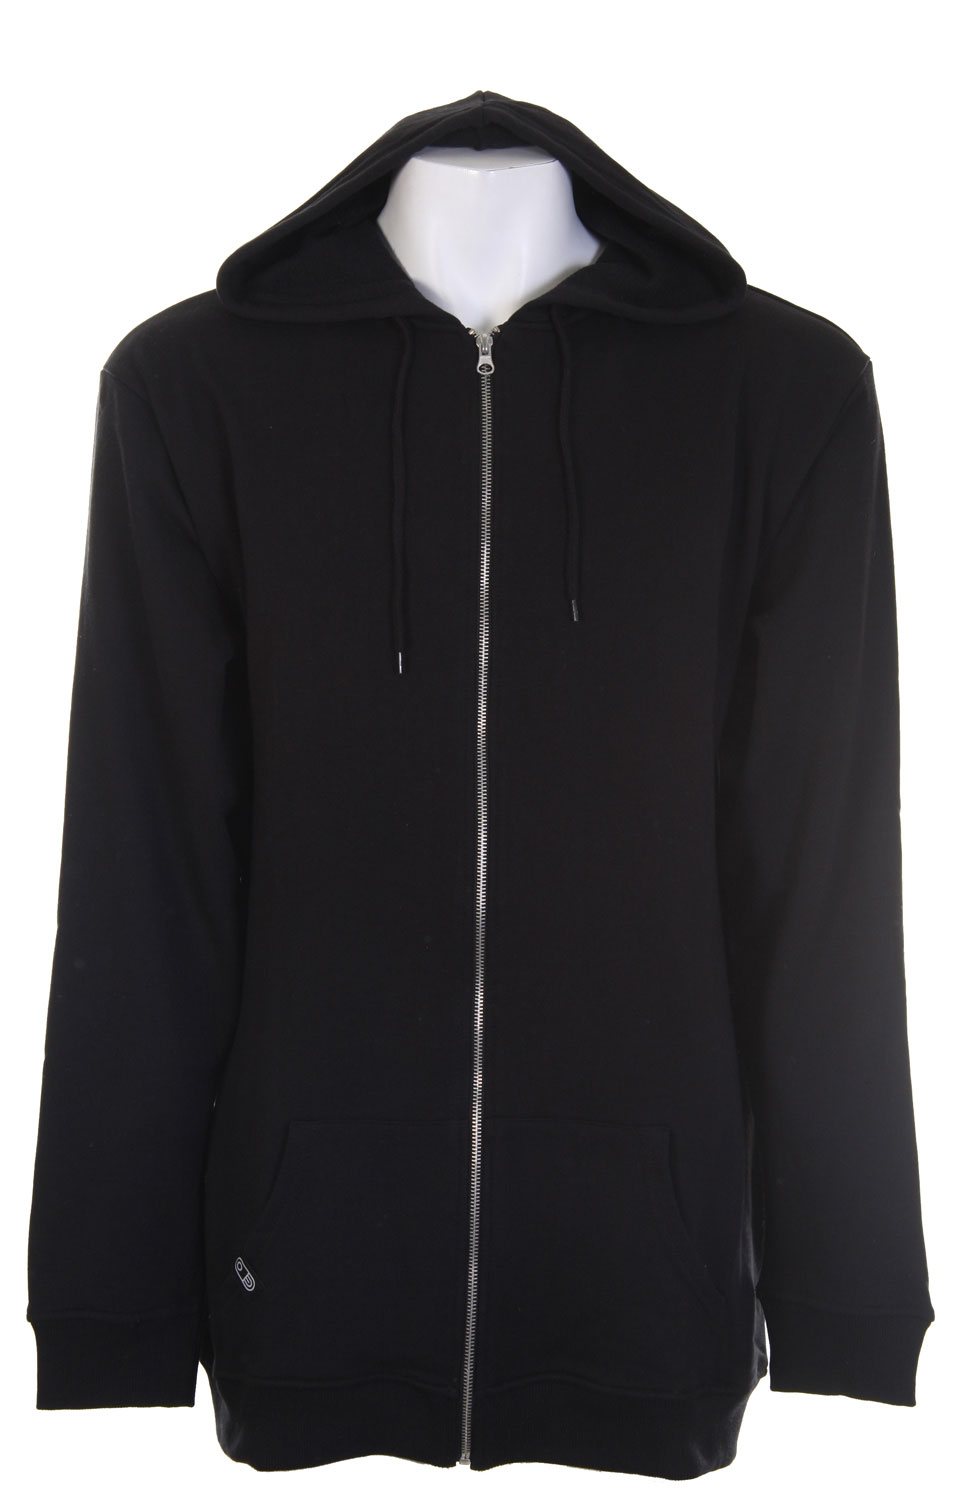 Entertainment Back again is the one and only Airpill sweatshirtKey Features of the Airblaster Airpill Full Zip Hoodie Black: Heavy weight French terry with a long slim fit - $41.95